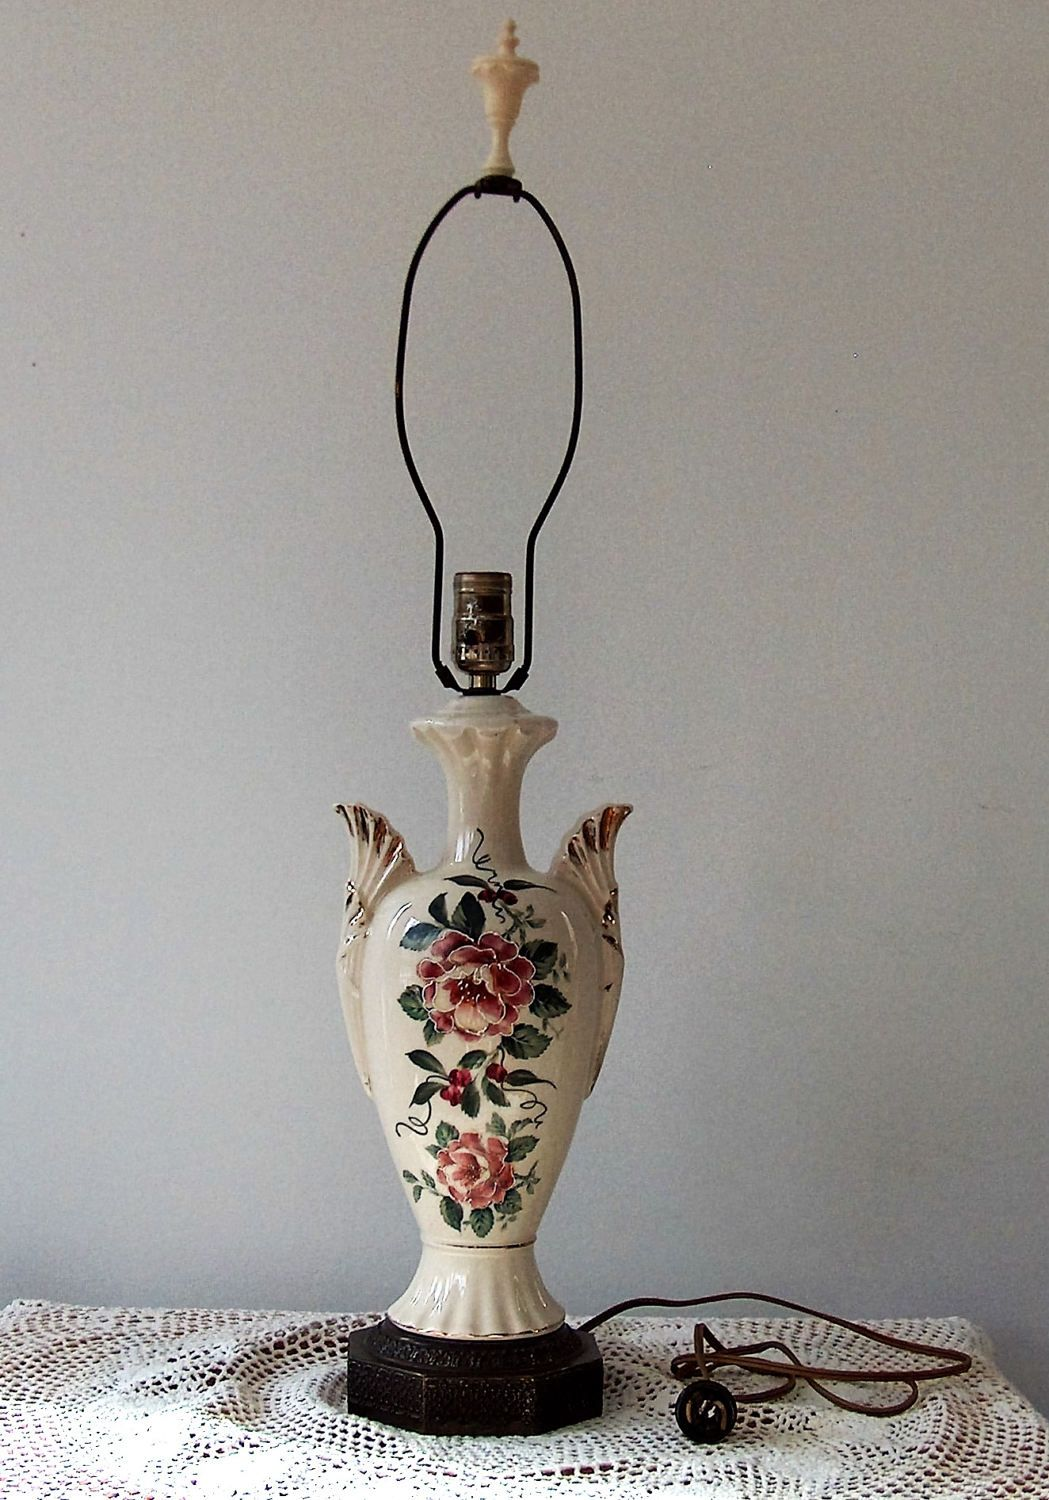 Antique hand rose painted porcelain table lamp by myoldattractions